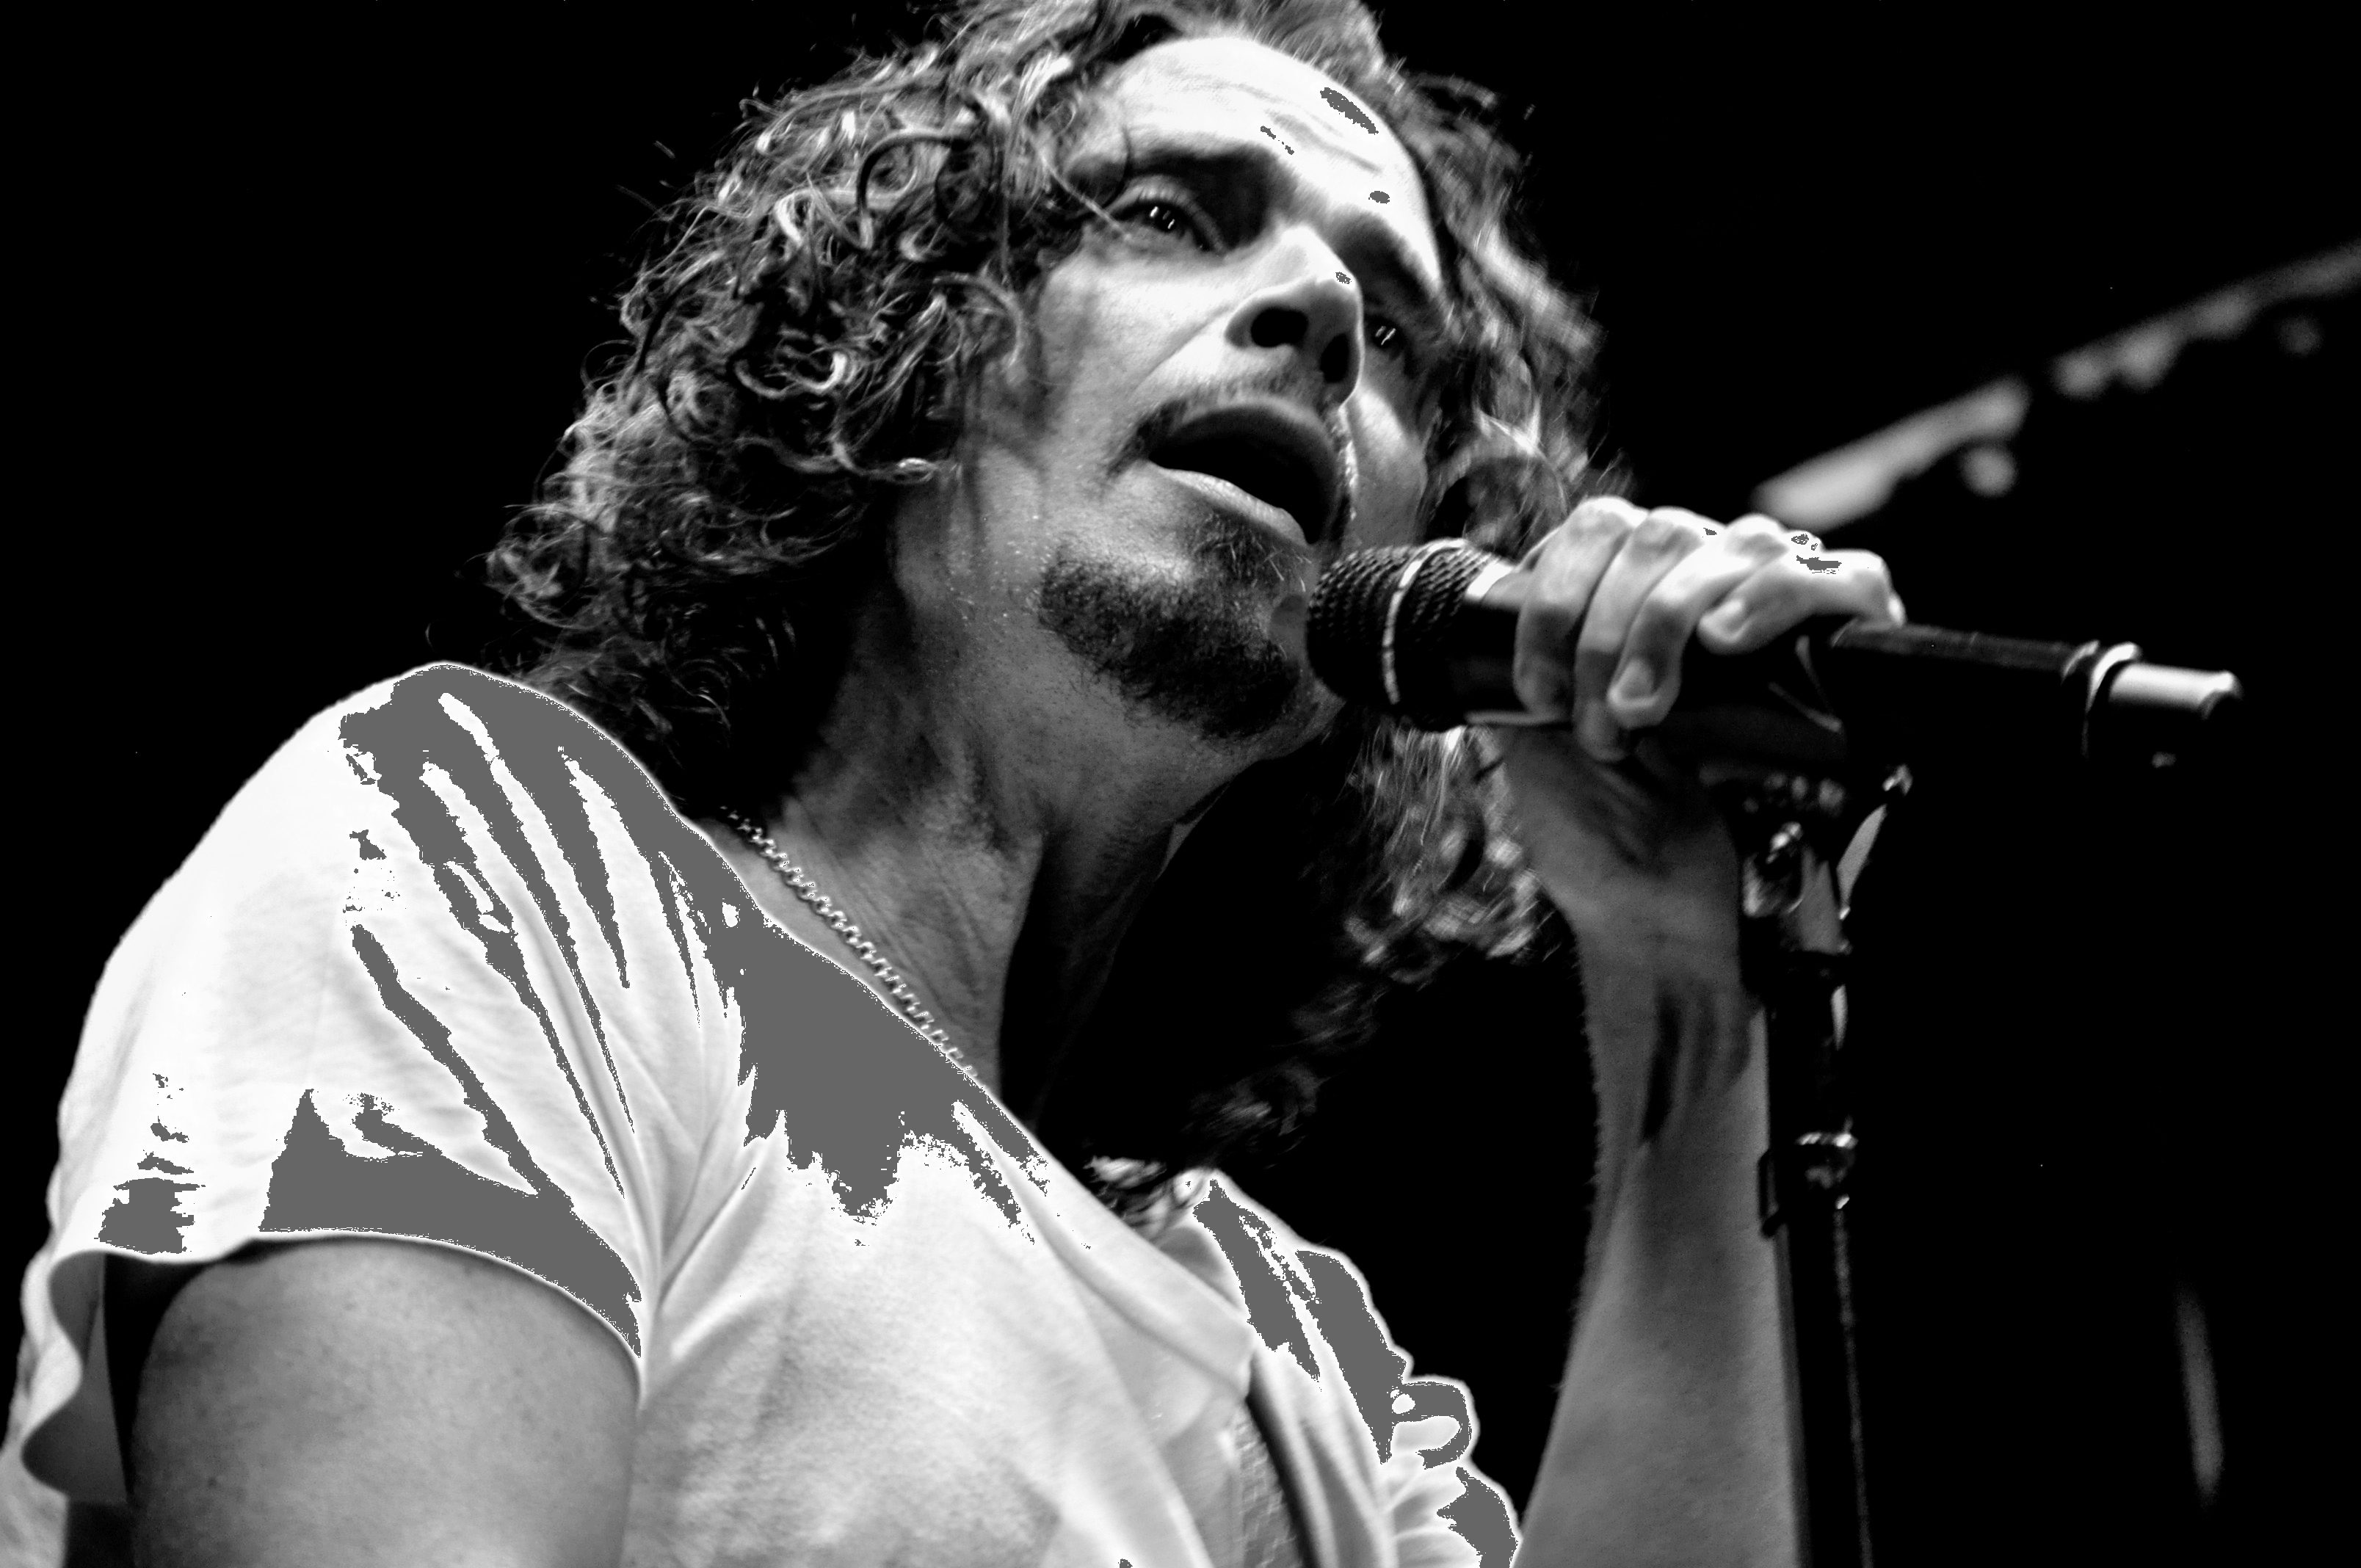 """Chris Cornell's Daughter Joins OneRepublic to Sing """"Hallelujah"""" in Tribute to Her Father and Chester Bennington"""